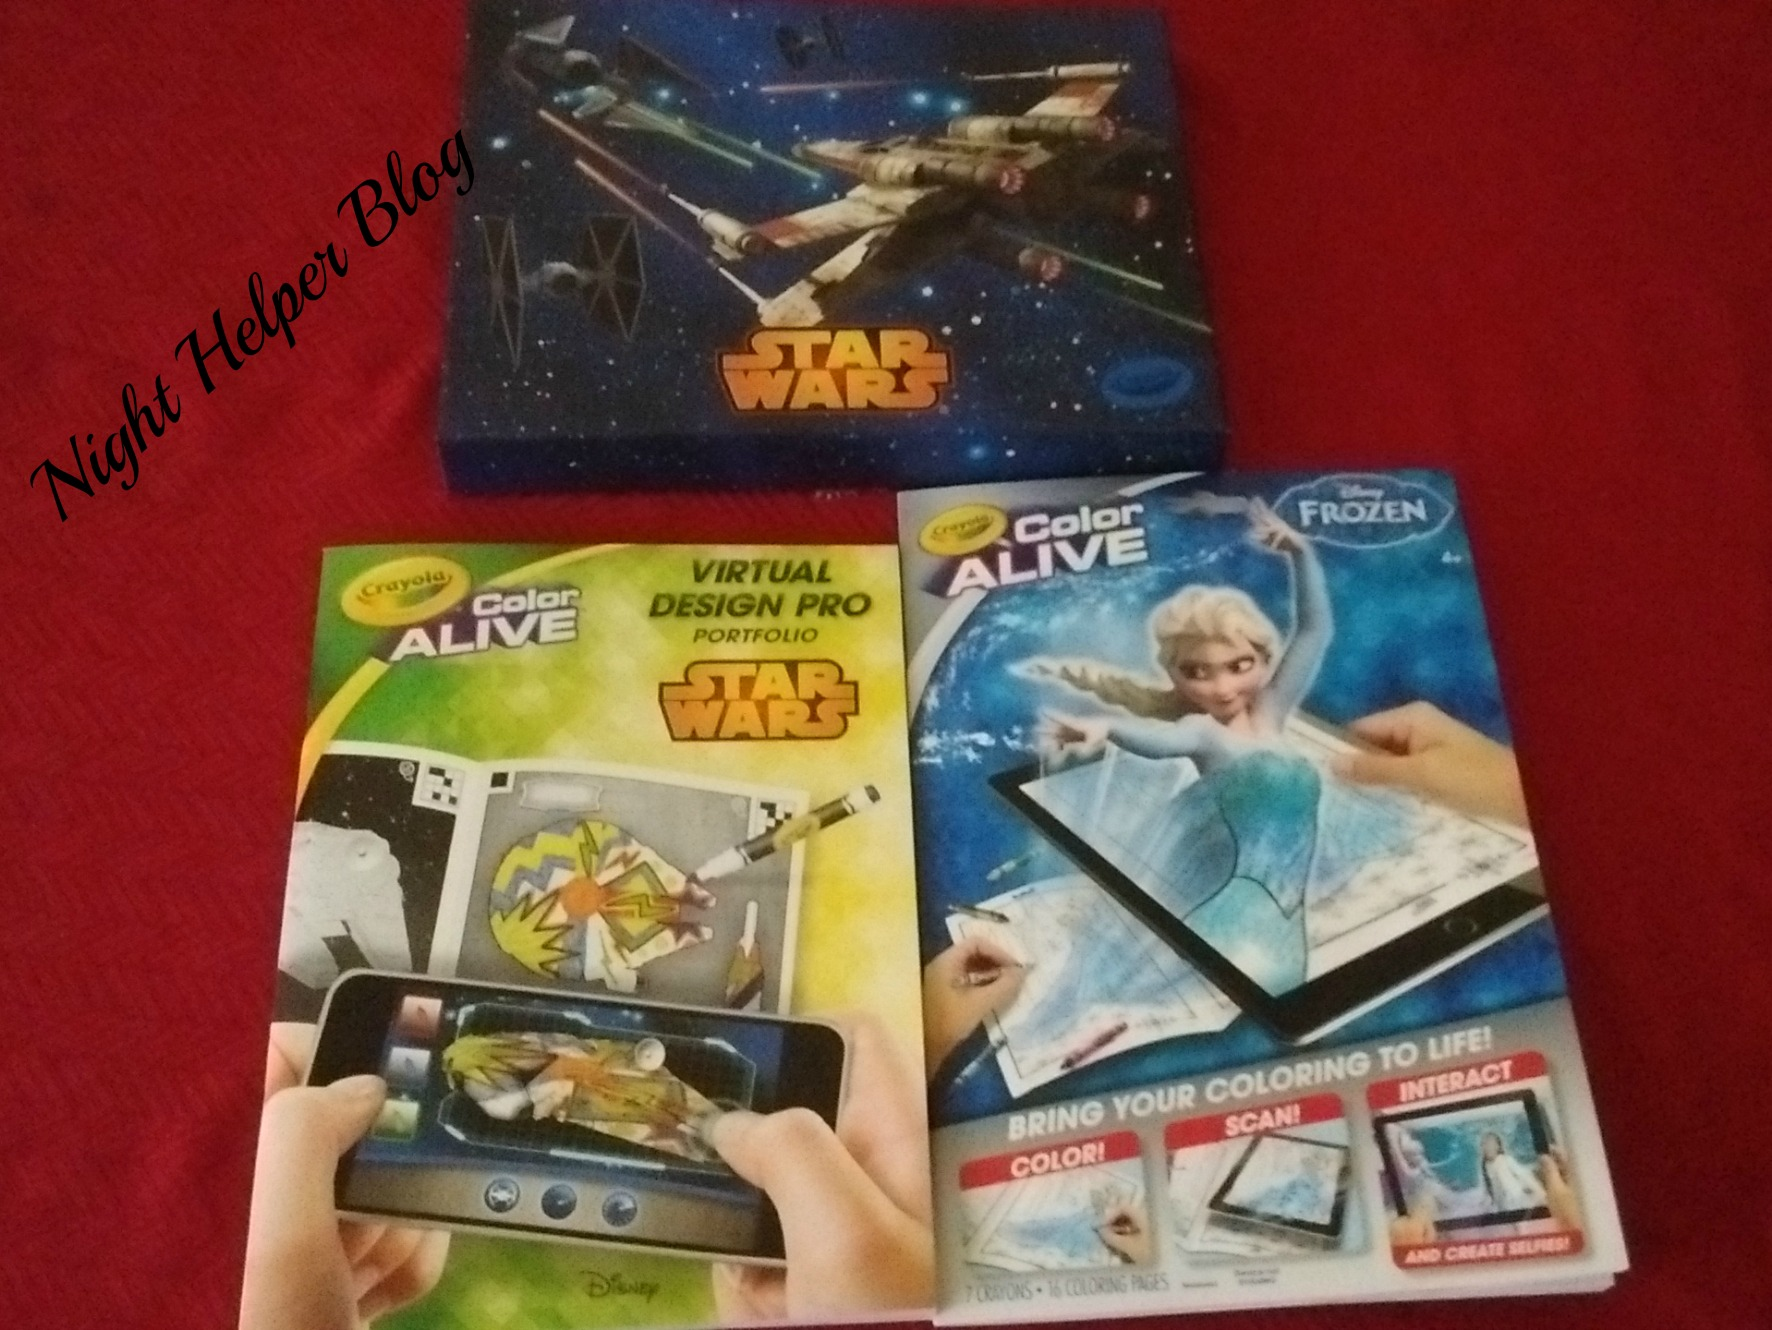 New Crayola's Color Alive Frozen and Star Wars Virtual Design Pro, just in time for Easter!